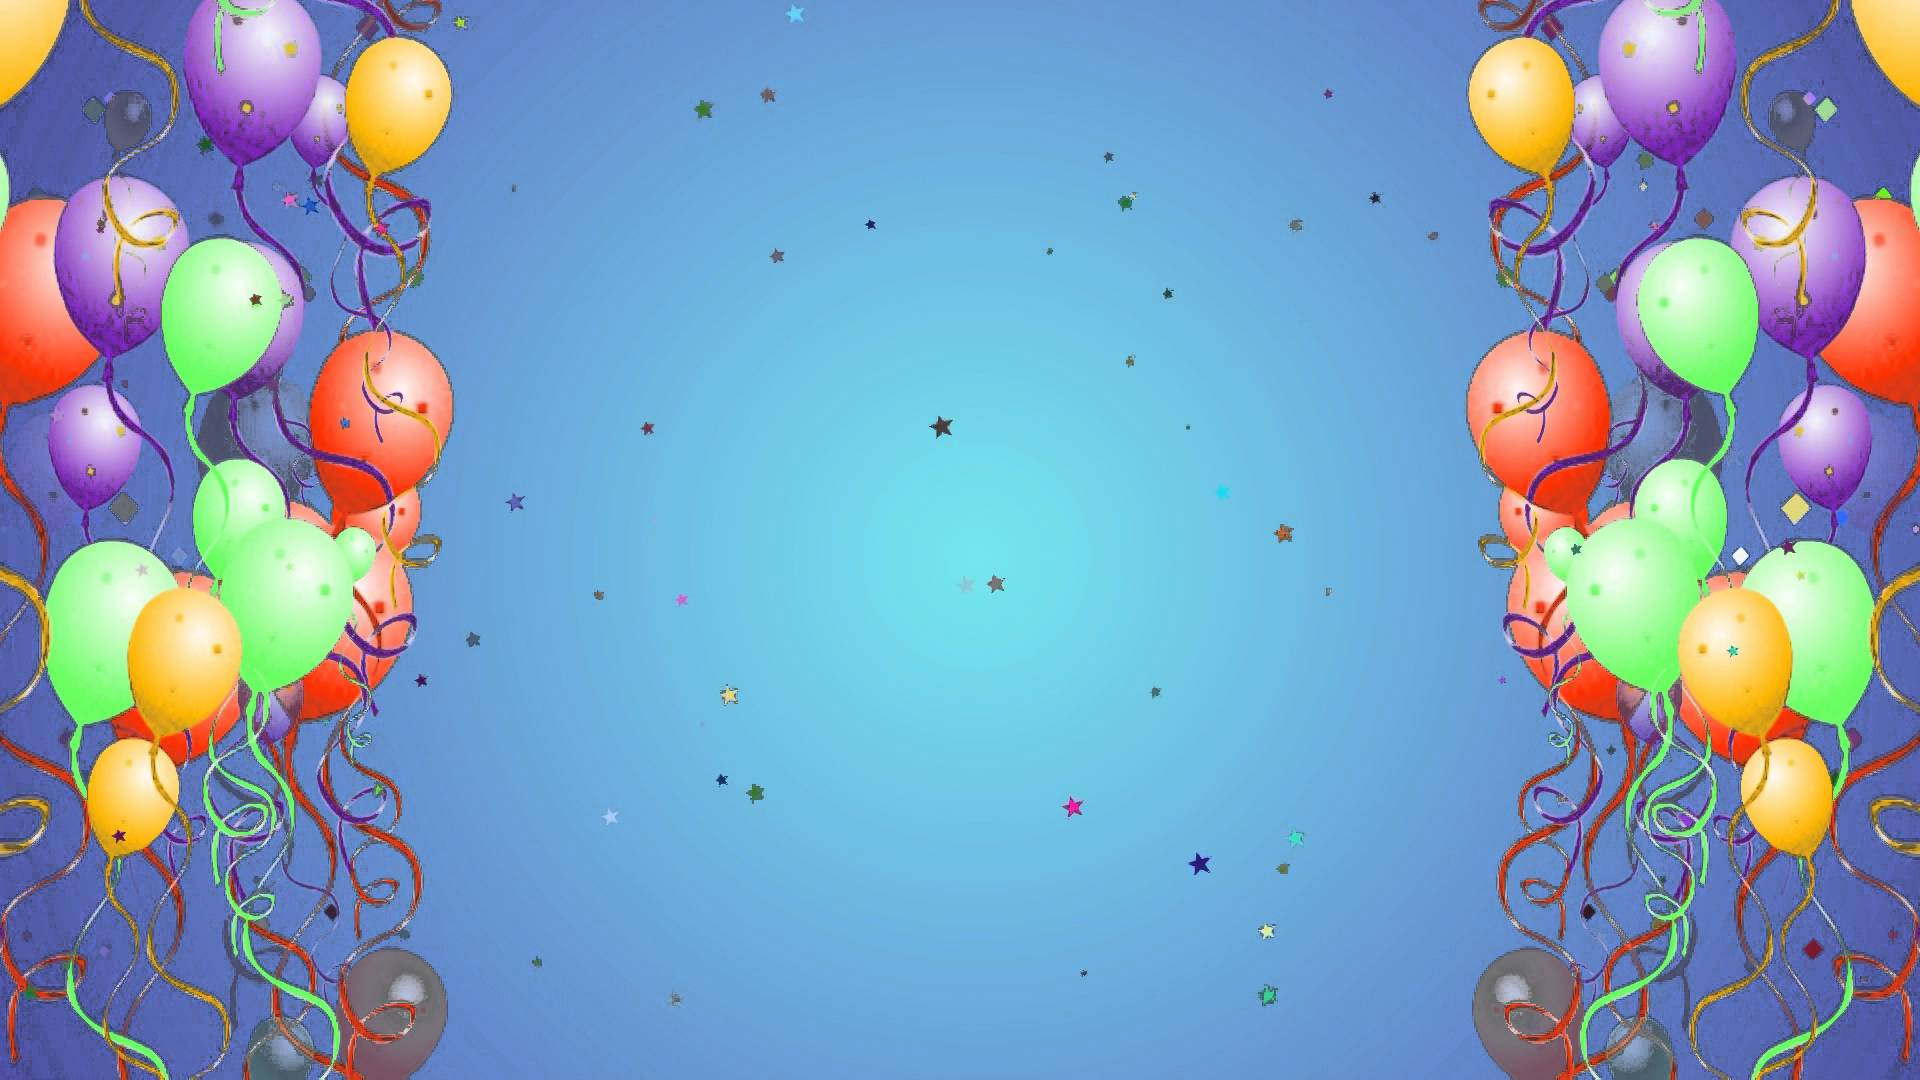 birthday background images hd ; maxresdefault-3